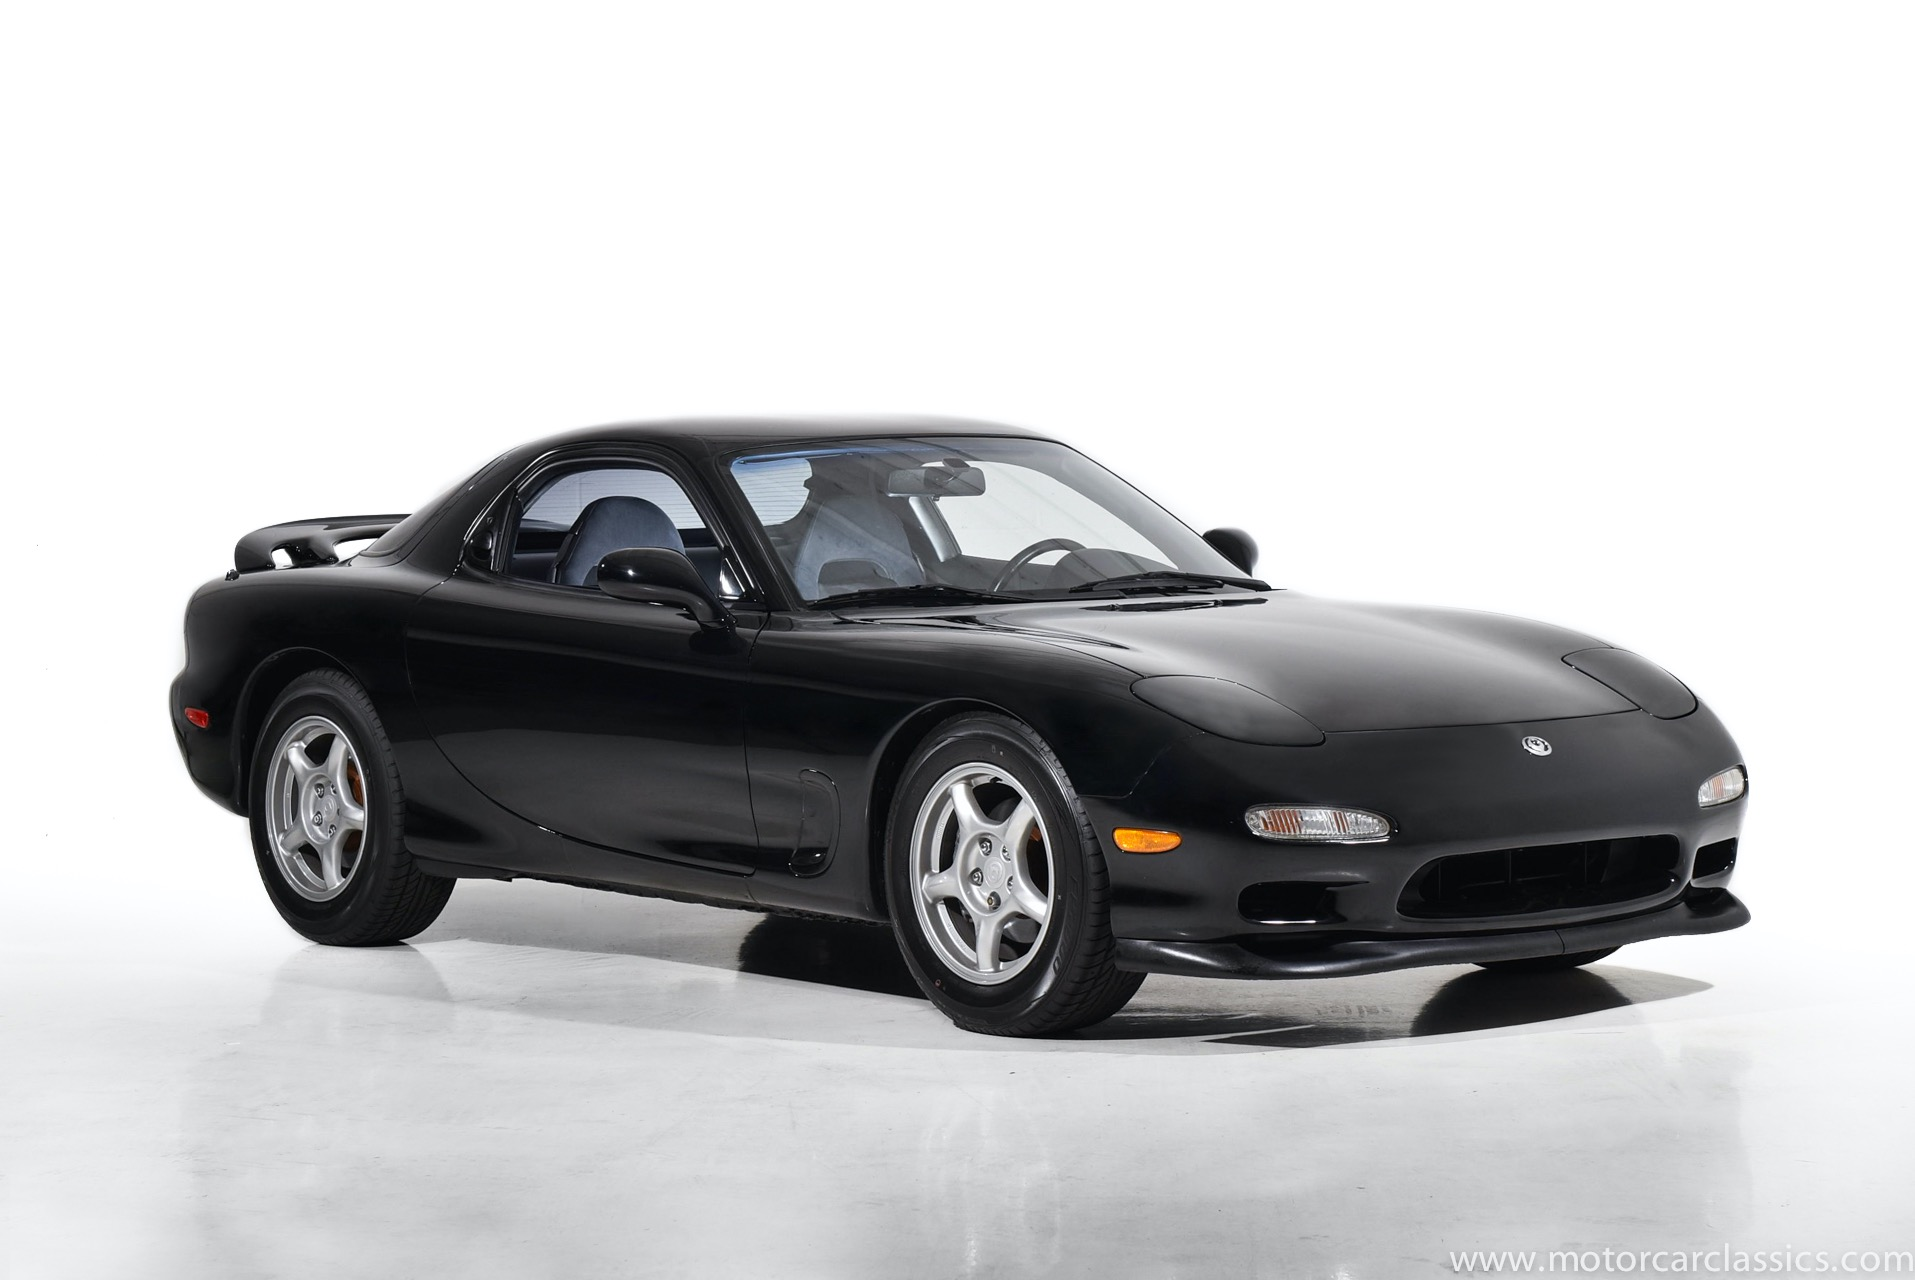 Used 1994 Mazda RX-7 Turbo | Farmingdale, NY